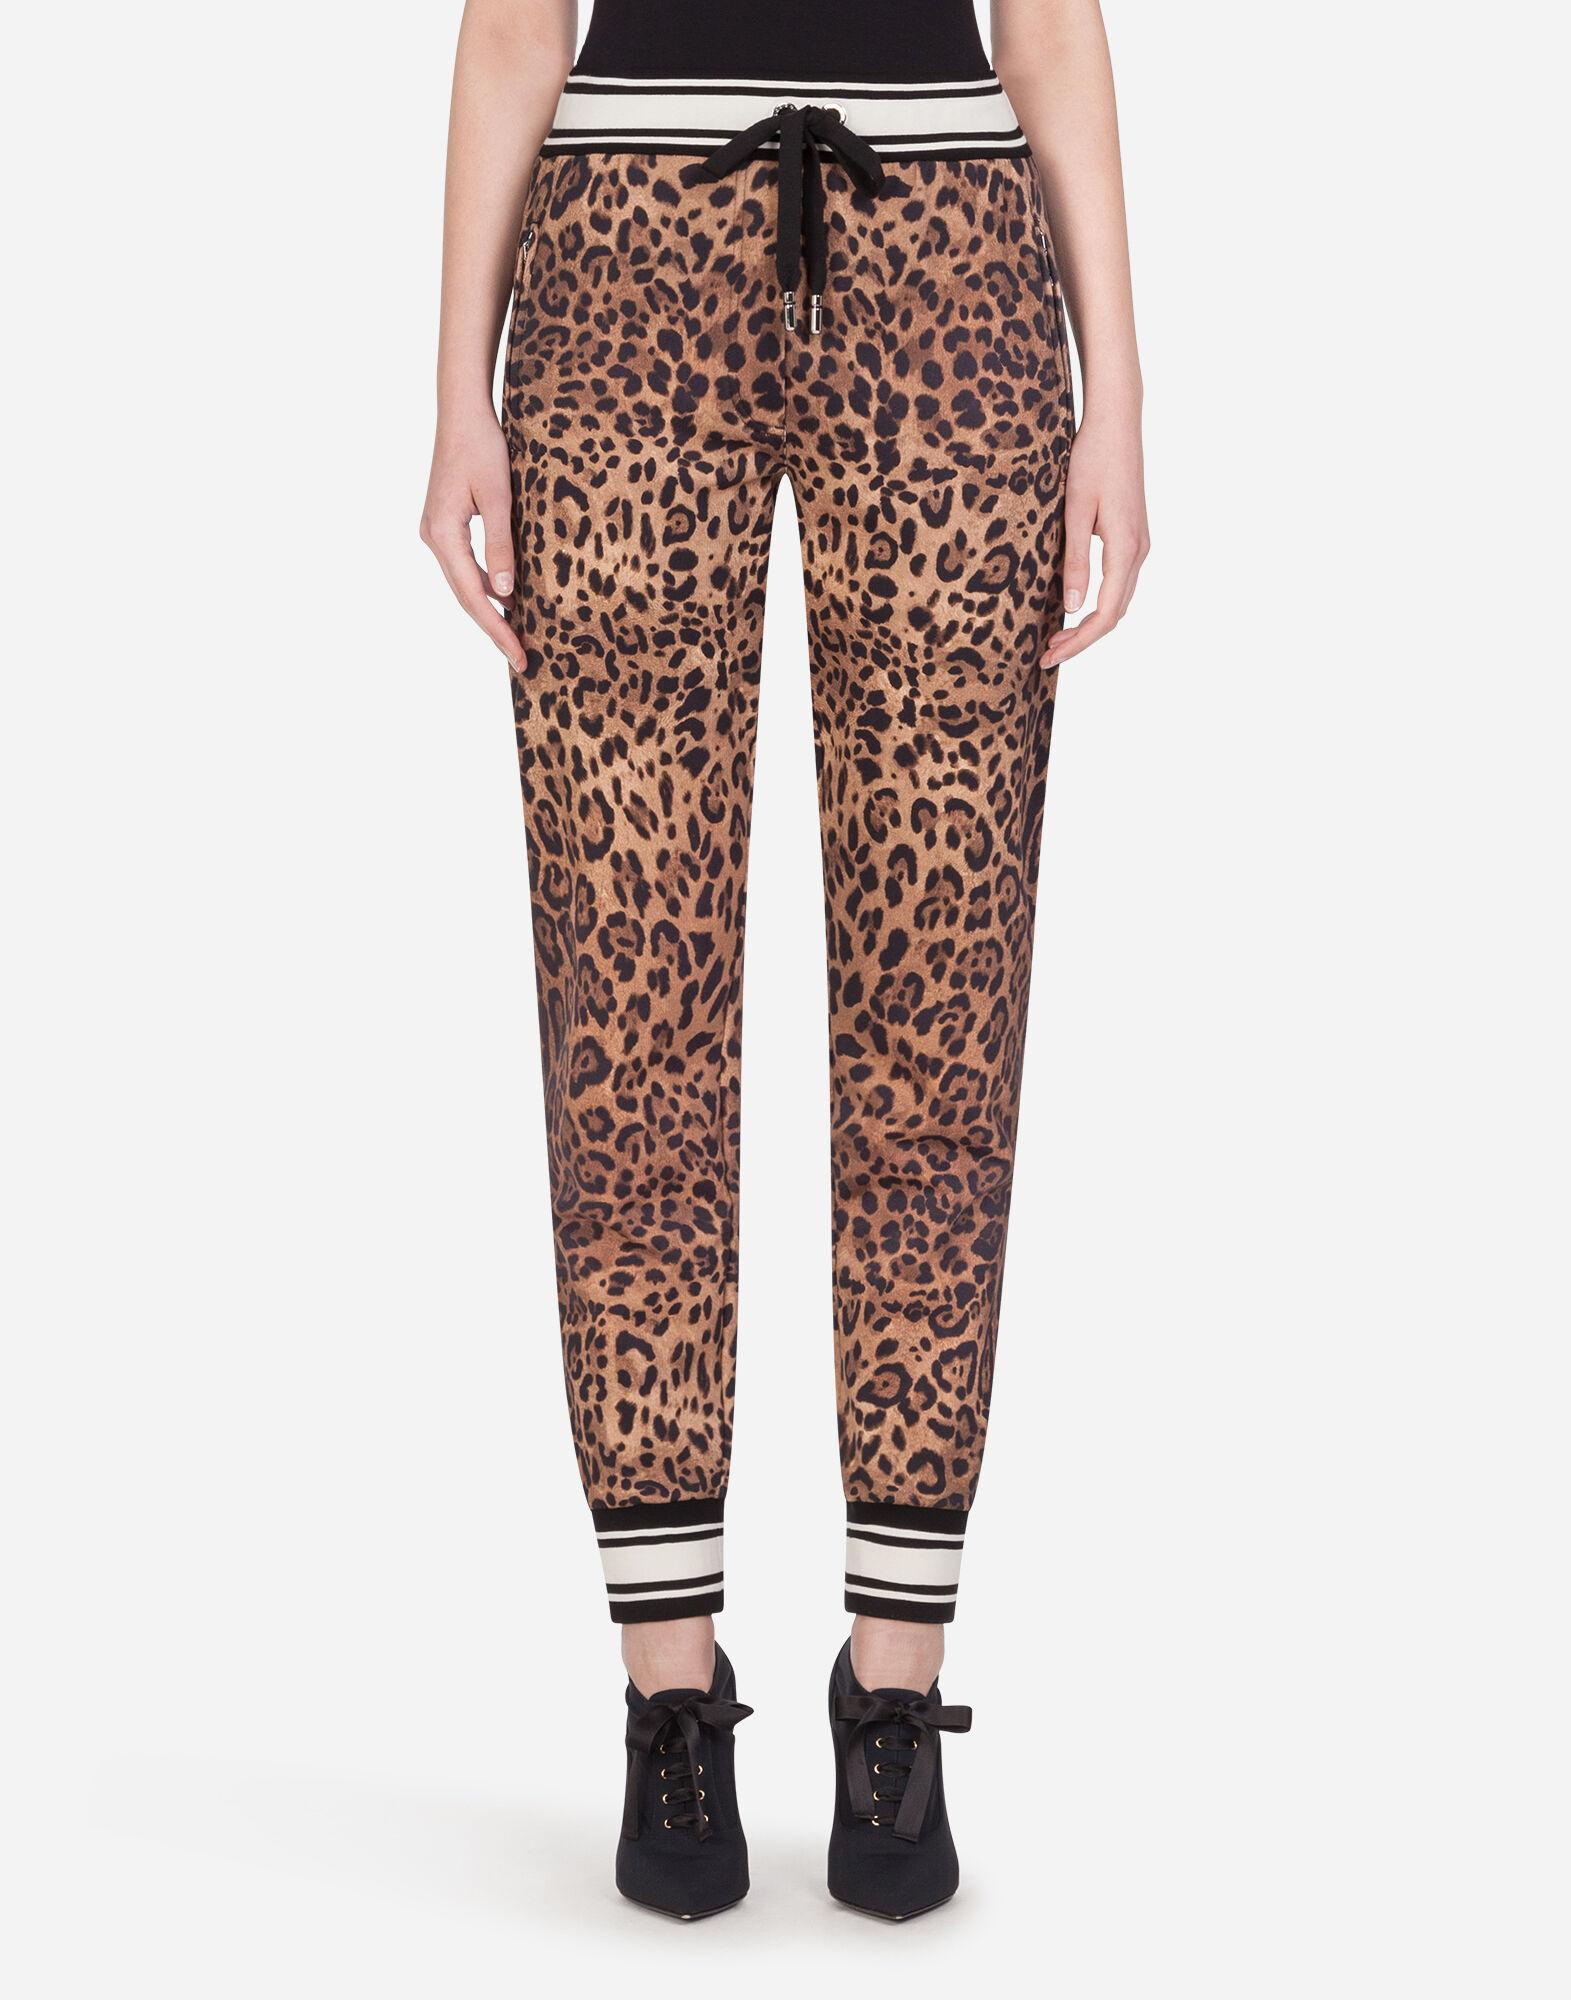 Jersey jogging pants with leopard print